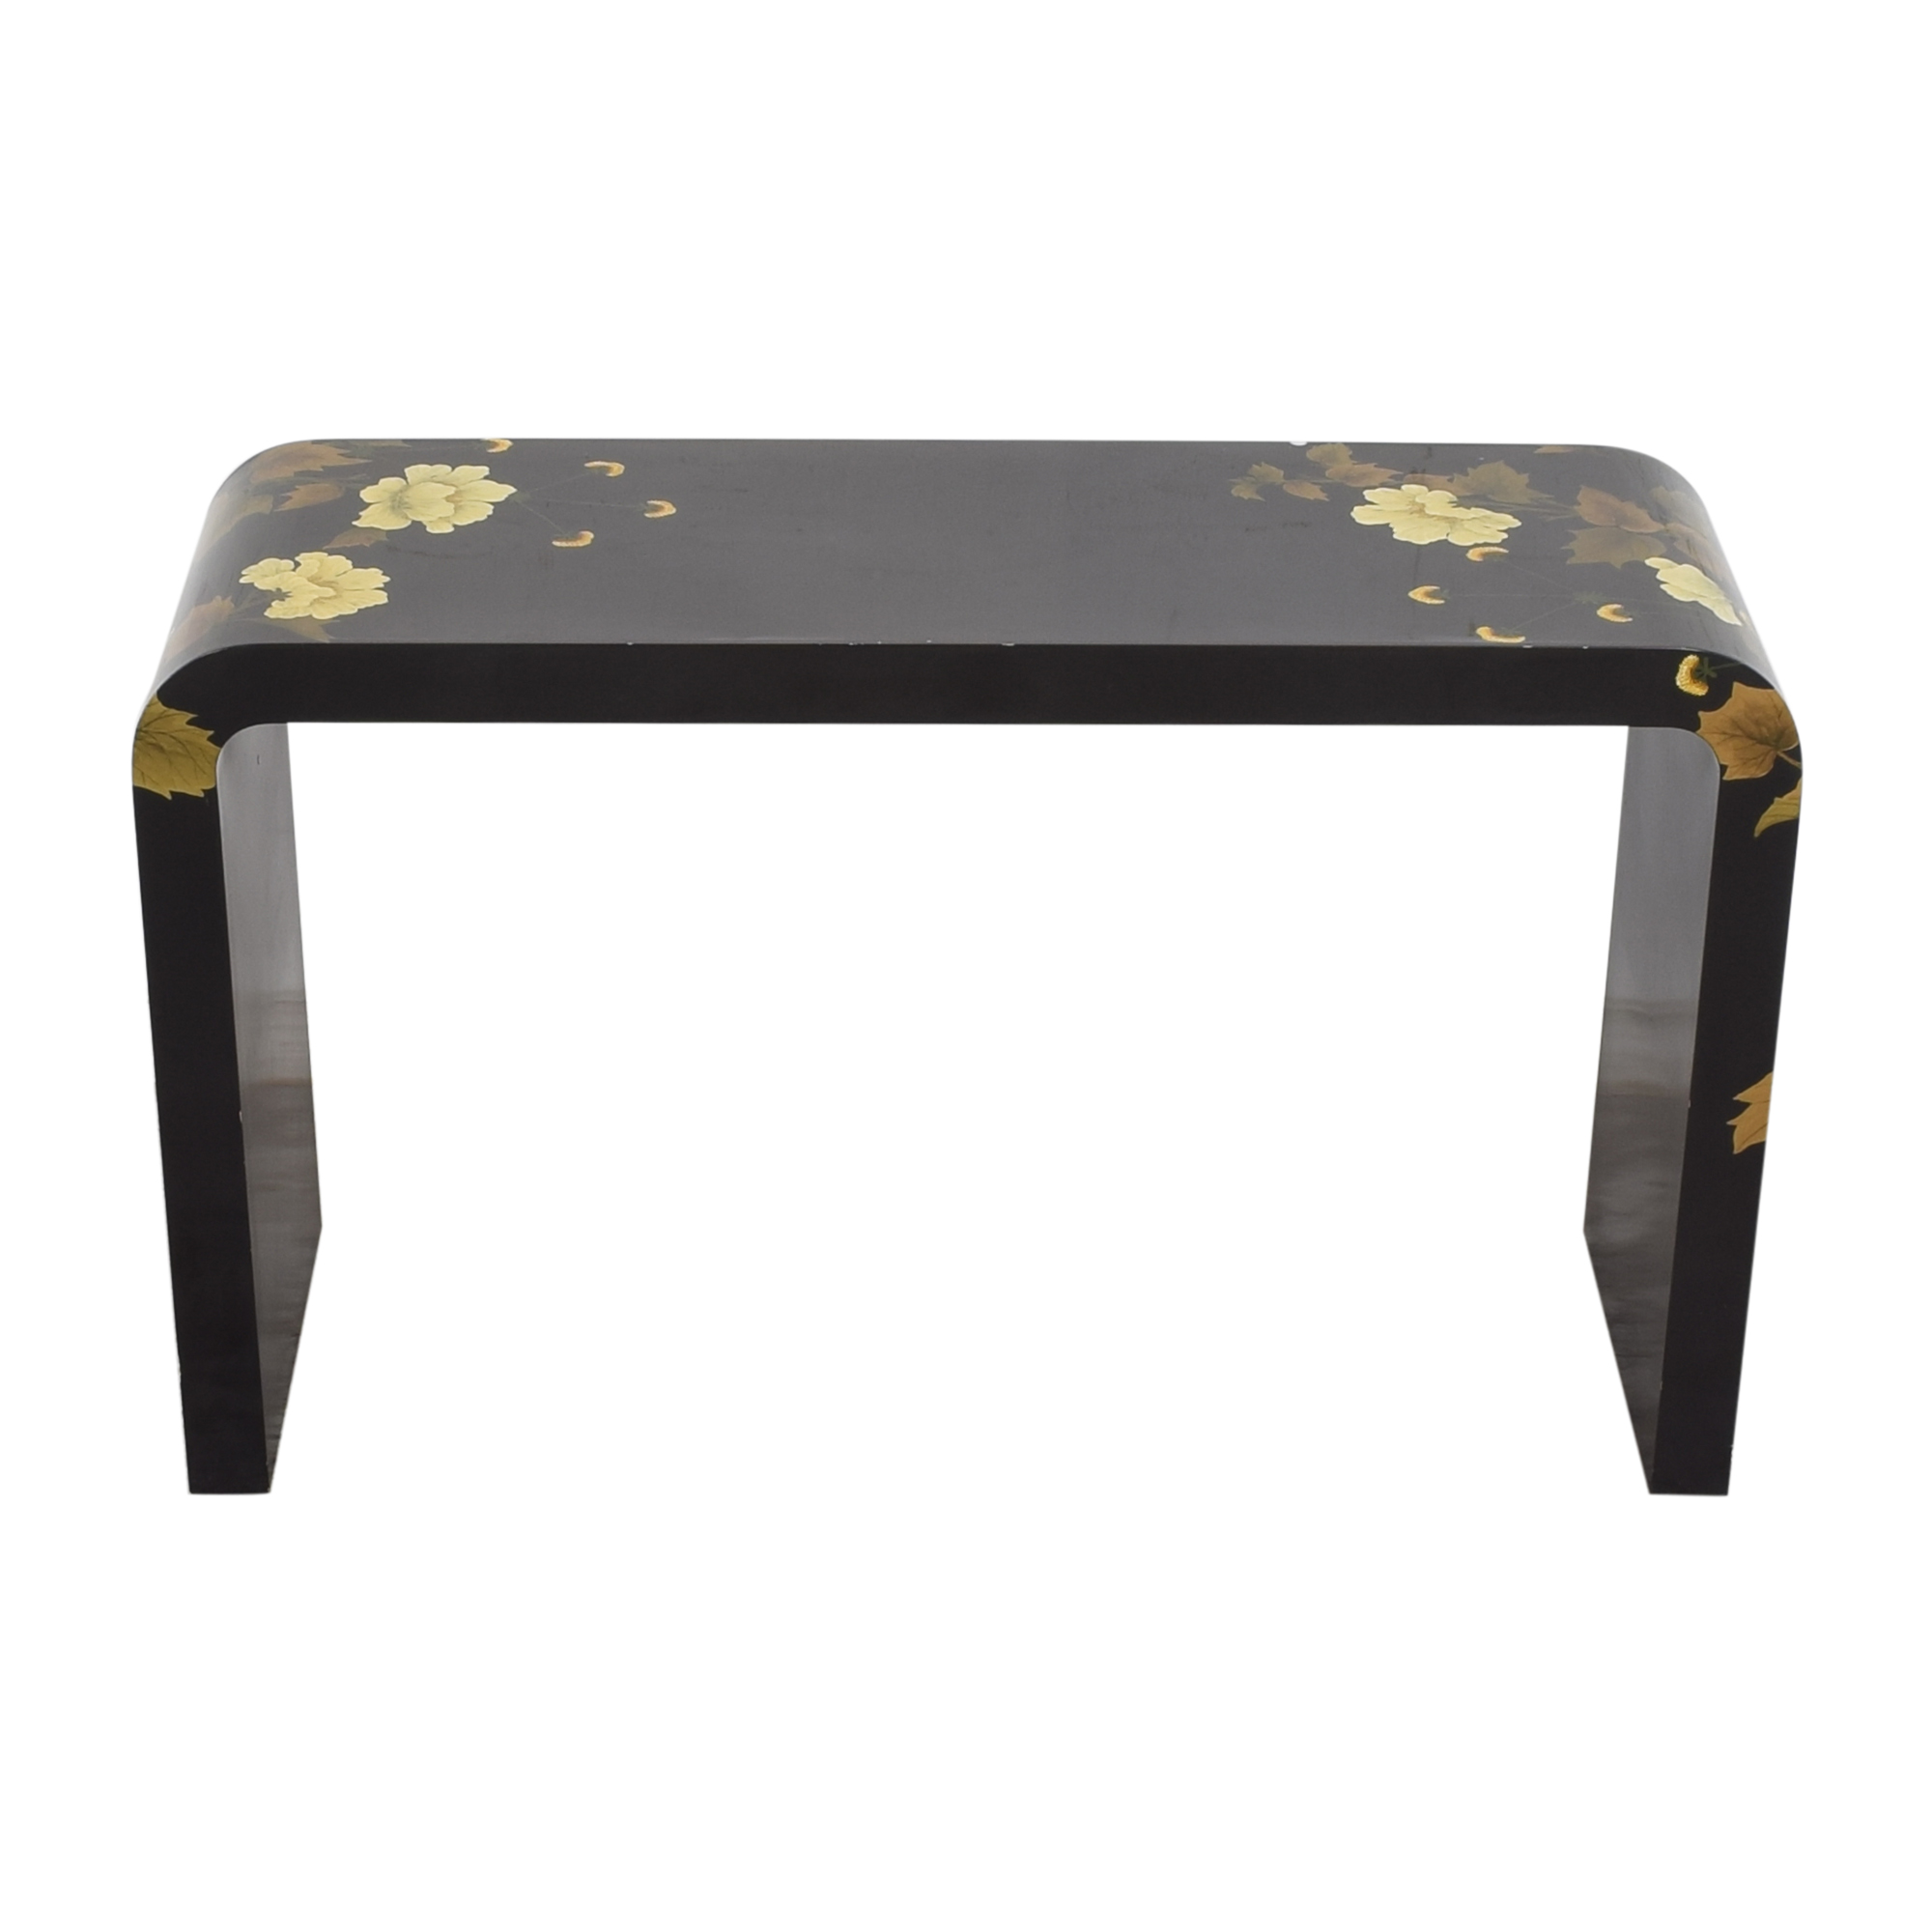 buy Decorative Floral Waterfall Console Table